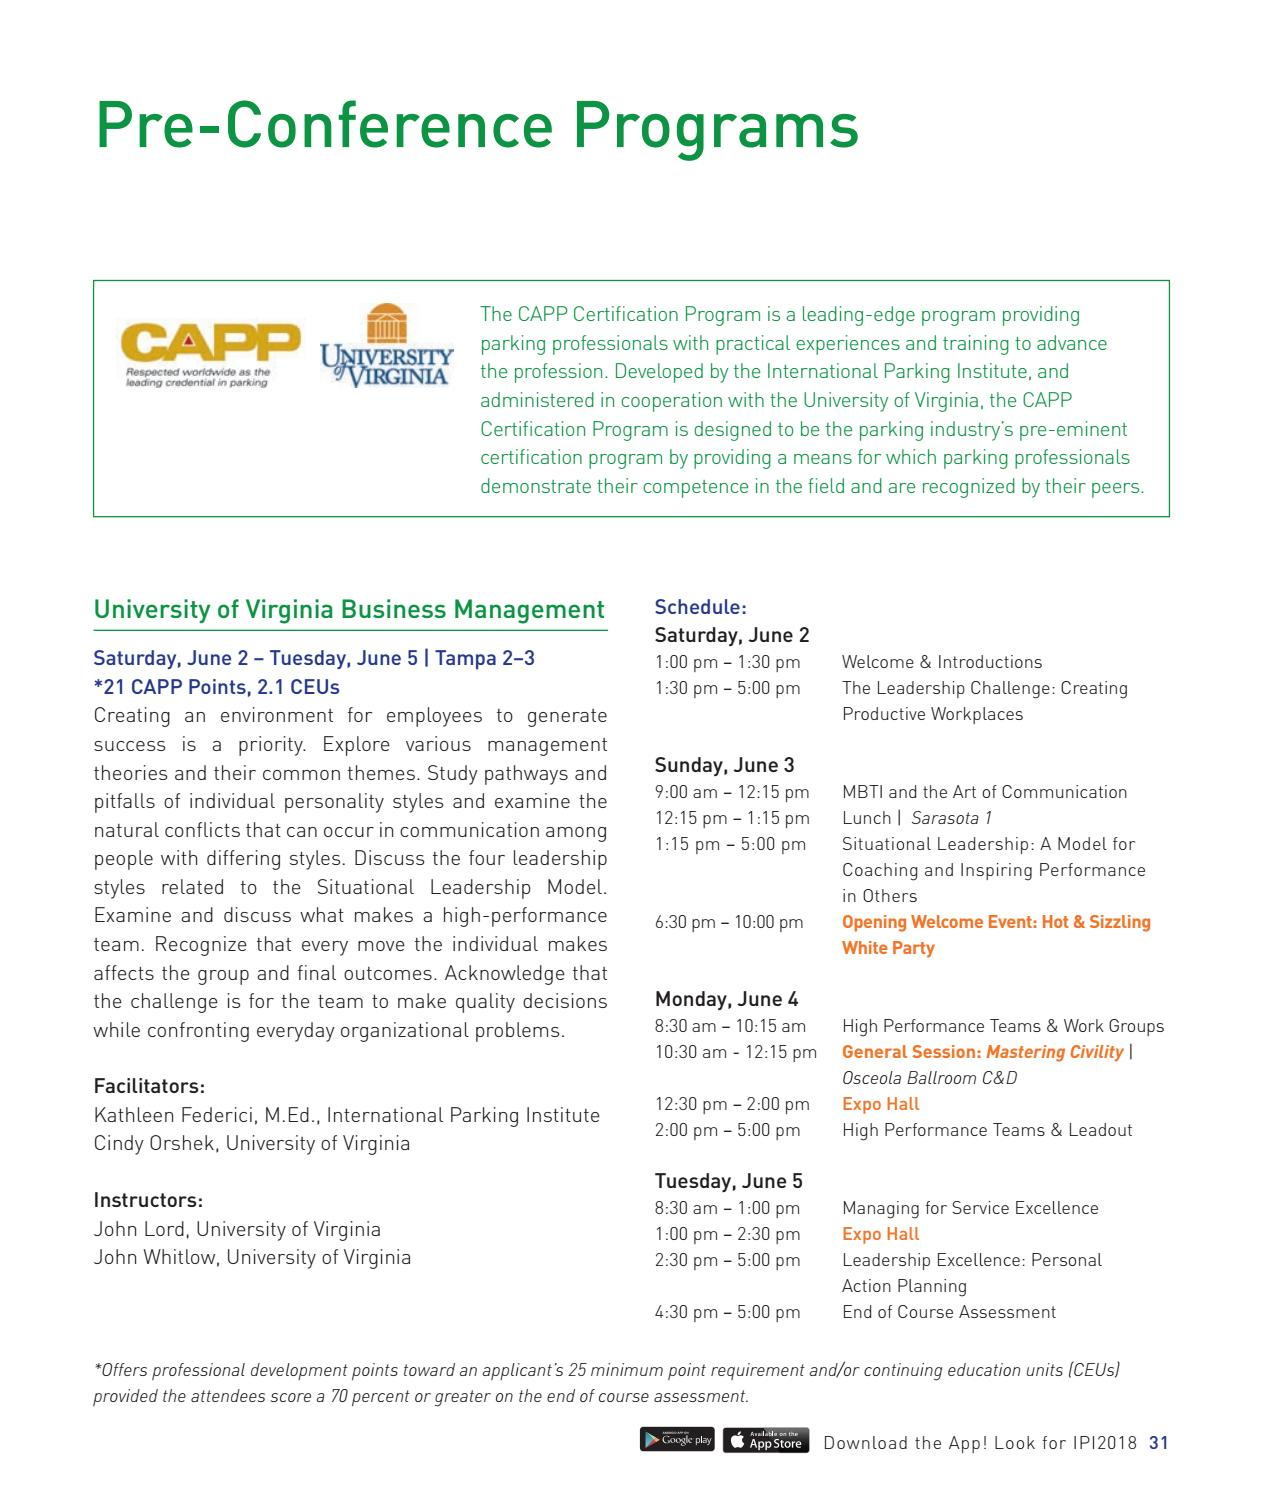 2018 Ipi Conference Expo Official Conference Program Guide By